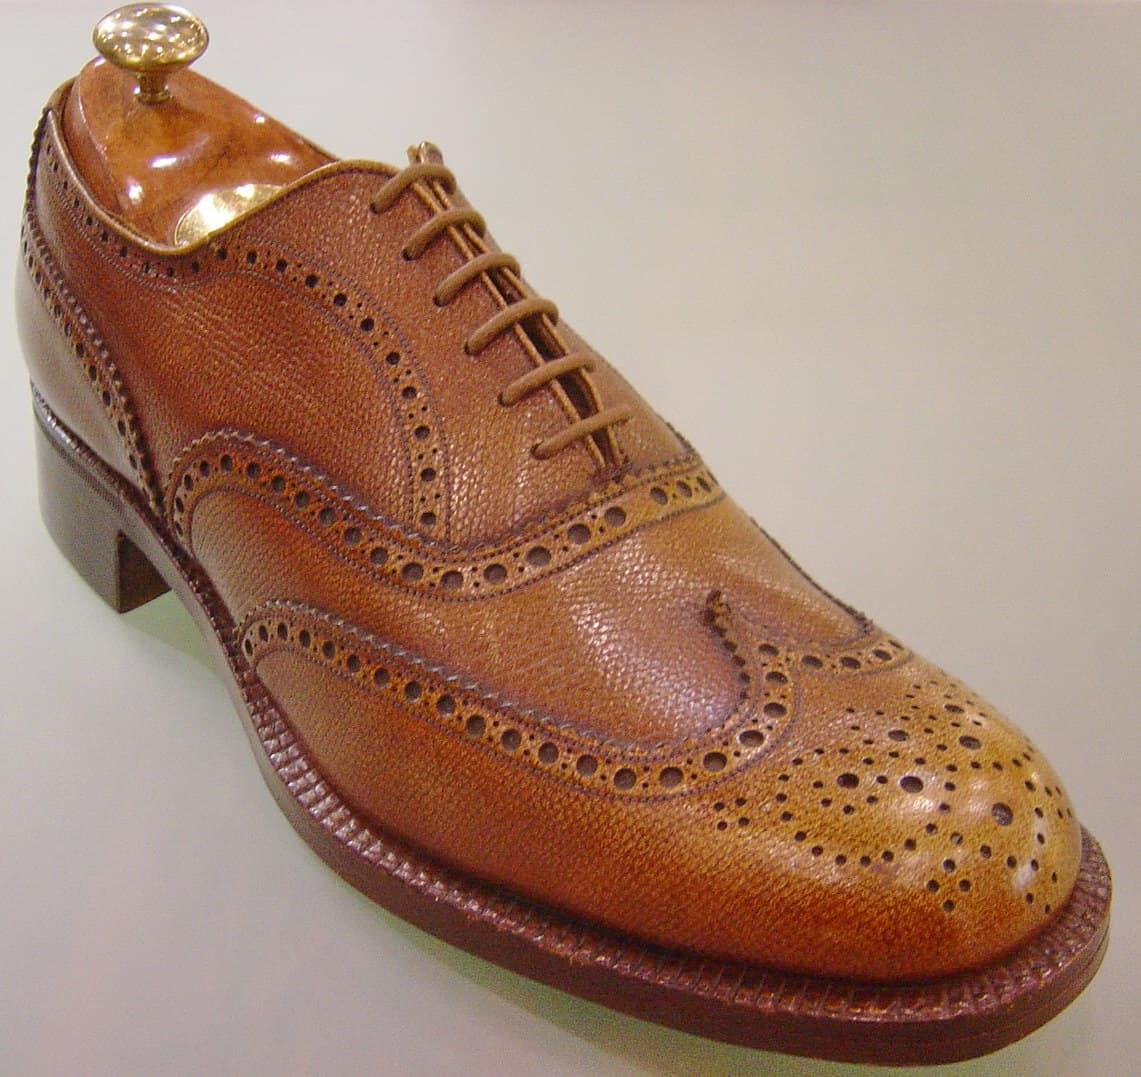 "WE'VE TAKEN BROGUING BACK TO ITS ROOTS Today, we usually see the decorative perforations called ""brogues"" on dress shoes. But they actually originated in the early s in Ireland on outdoor boots to let water to drain when crossing wet terrain."